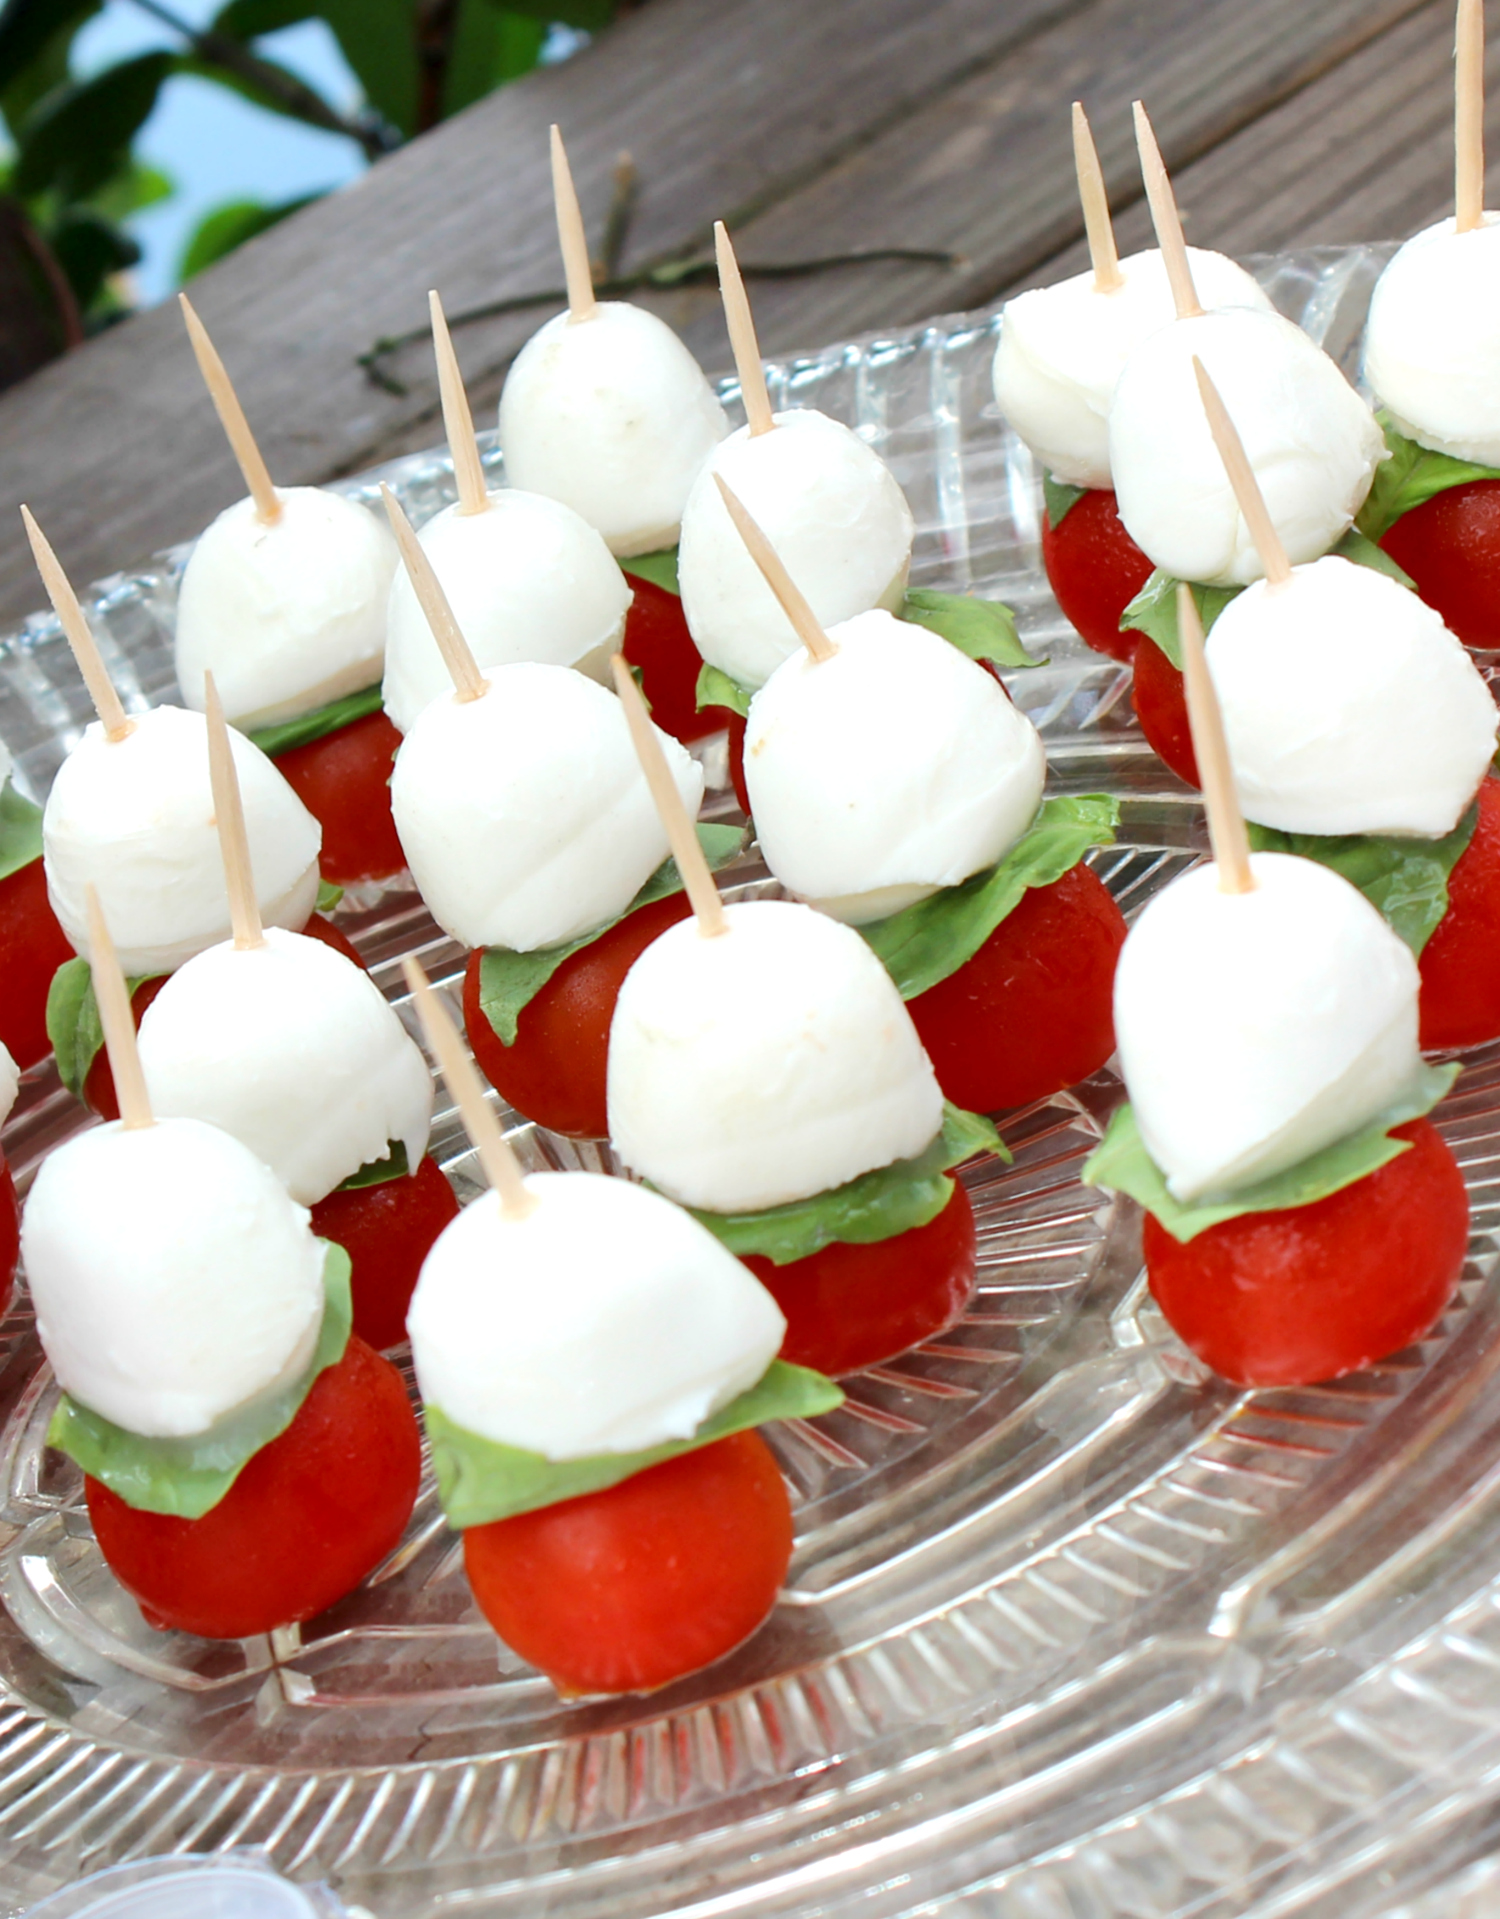 Looking for an easy summer appetizer? These caprese bites are a crowd favorite!